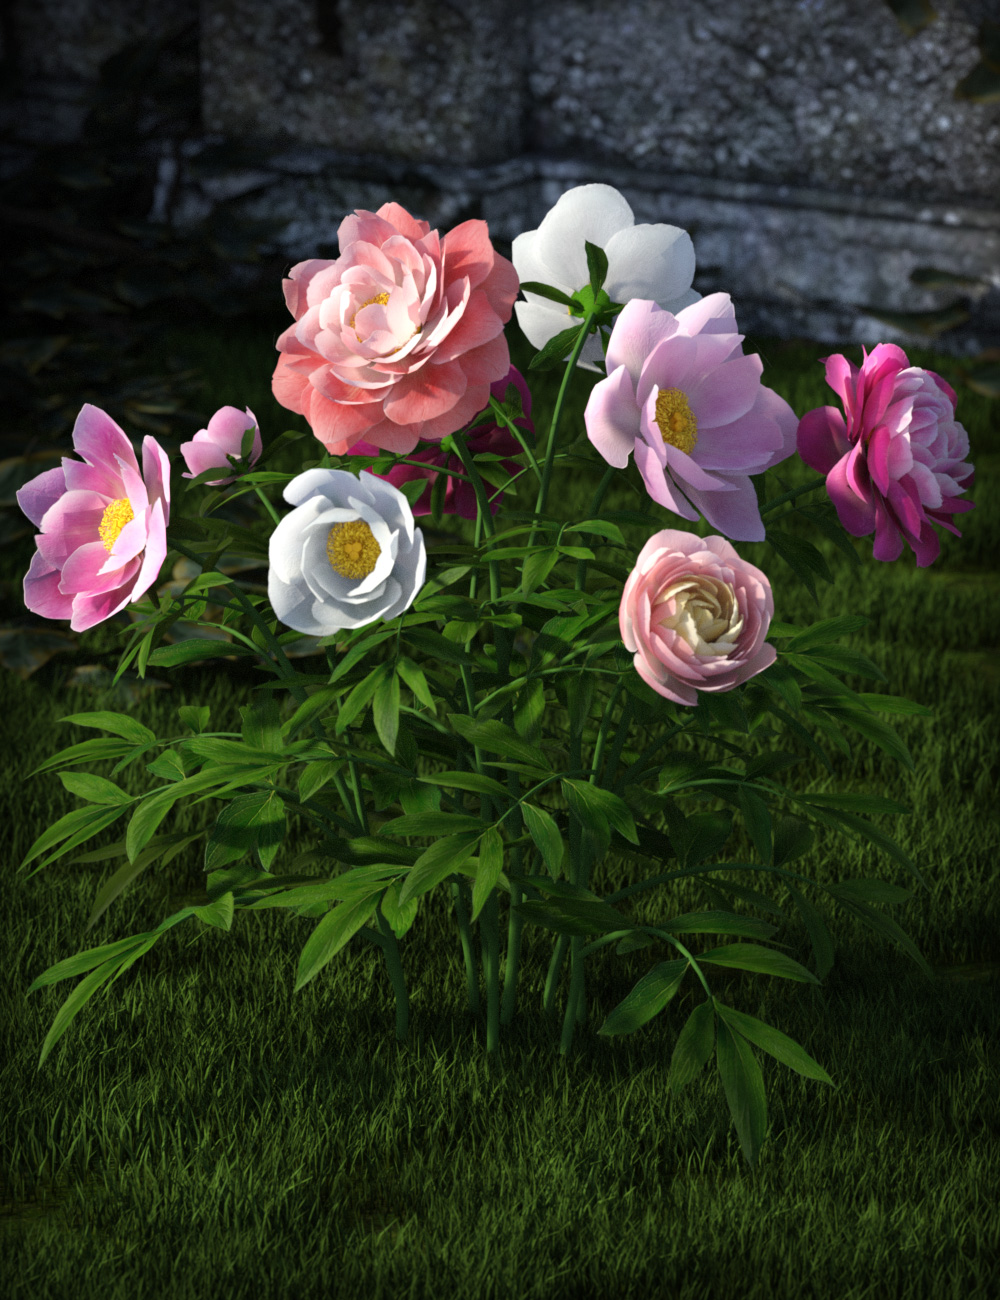 Poseable Peonies by: esha, 3D Models by Daz 3D